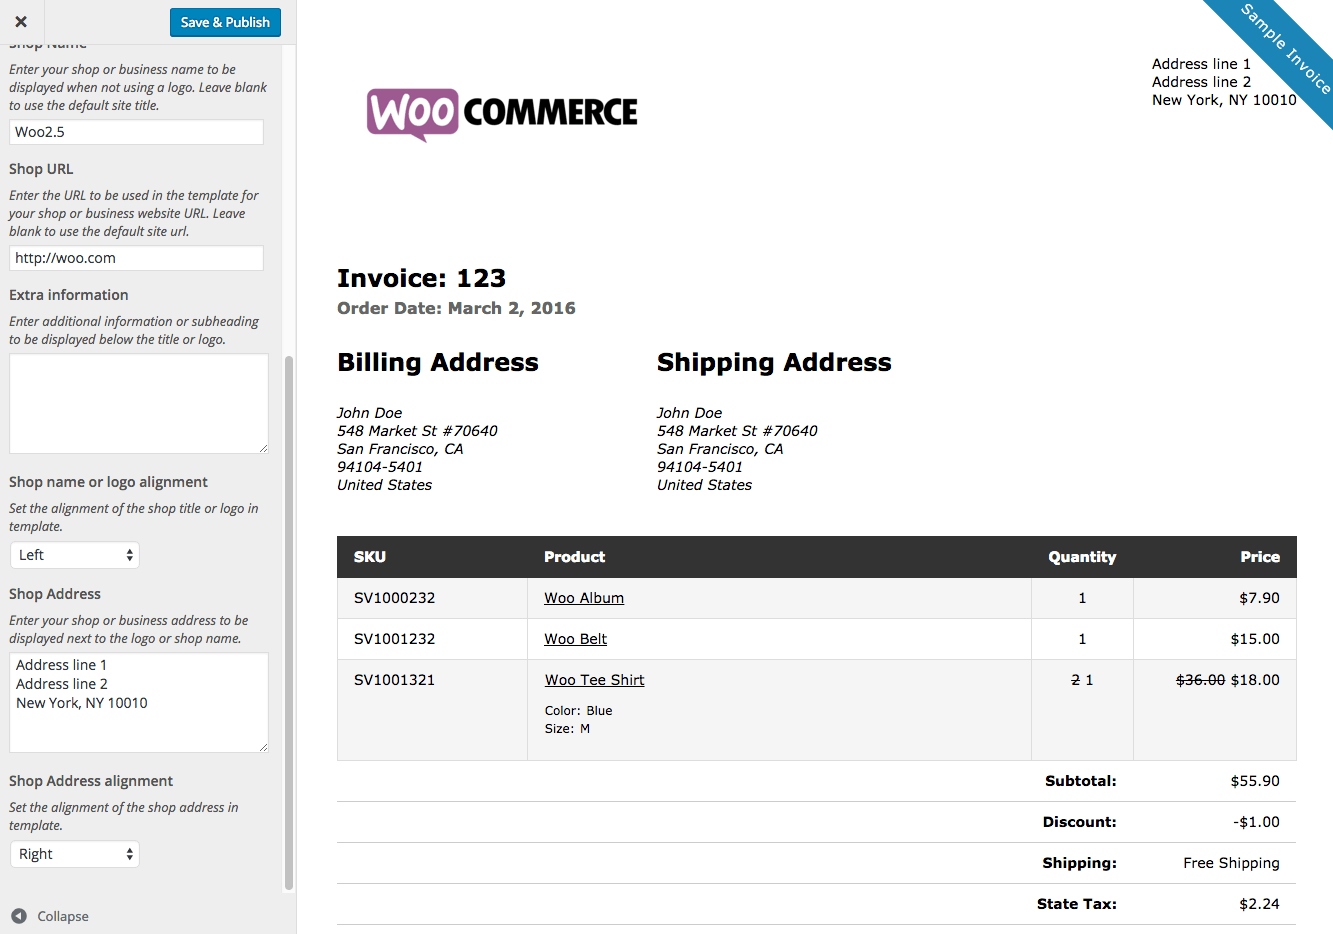 Pigbrotherus  Surprising Woocommerce Print Invoices Amp Packing Lists  Woocommerce Docs With Engaging Woocommerce Print Invoices  Packing Lists Customizer With Astounding Excel Rent Receipt Template Also Online Rent Receipt Generator In Addition German Taxi Receipt And Microsoft Templates Receipt As Well As Receipt Storage Book Additionally Receipt Printer Ipad From Docswoocommercecom With Pigbrotherus  Engaging Woocommerce Print Invoices Amp Packing Lists  Woocommerce Docs With Astounding Woocommerce Print Invoices  Packing Lists Customizer And Surprising Excel Rent Receipt Template Also Online Rent Receipt Generator In Addition German Taxi Receipt From Docswoocommercecom